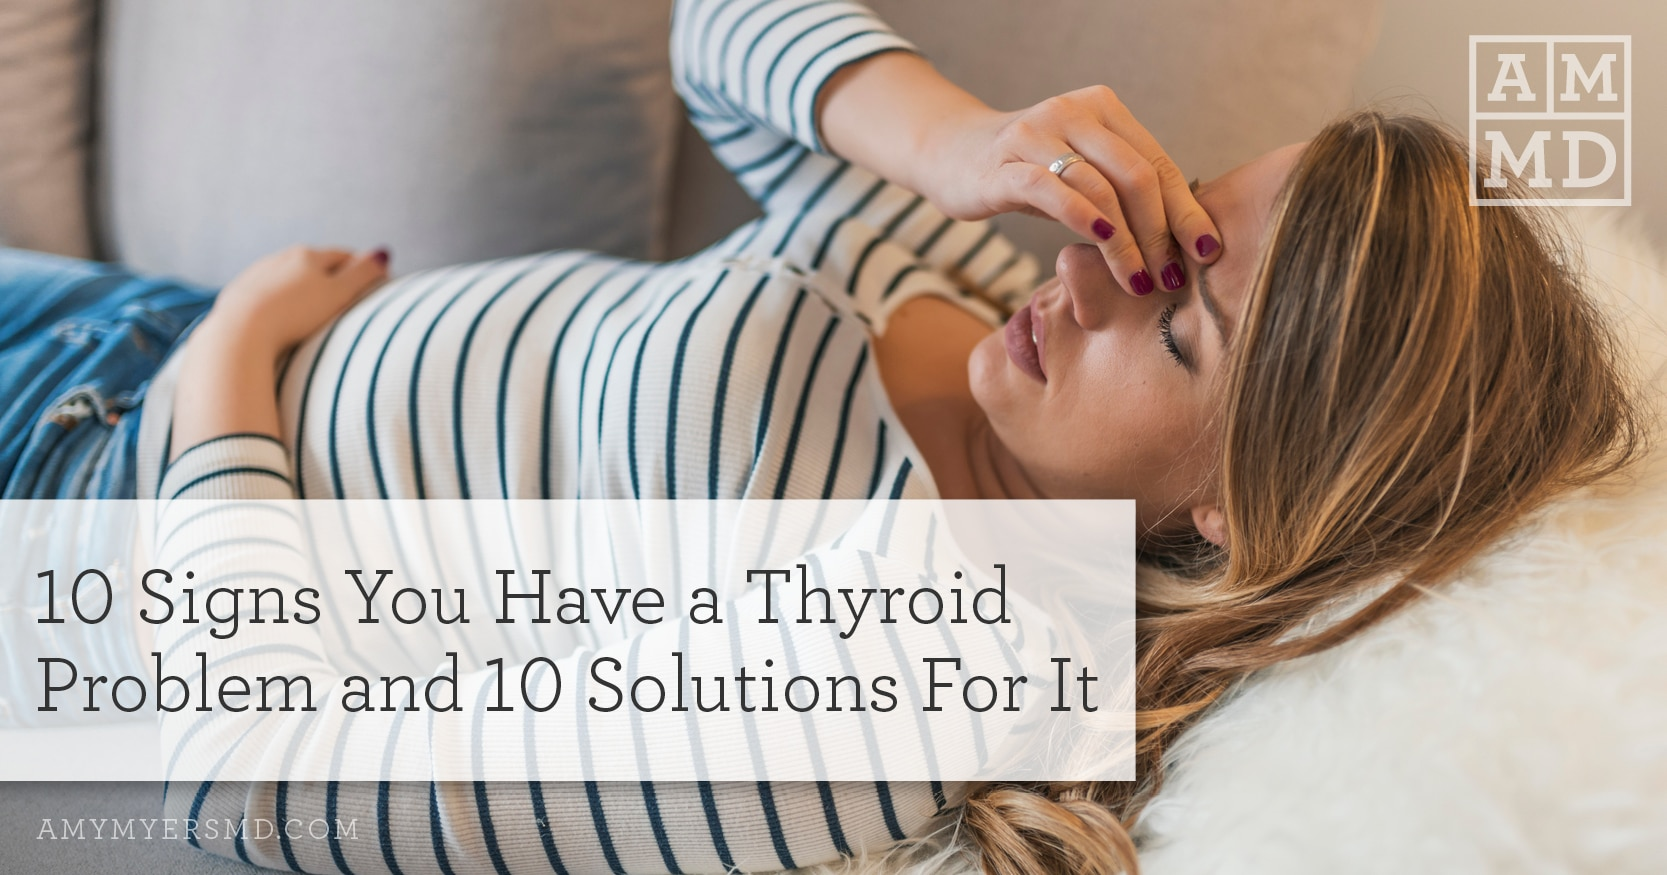 10 signs you have a thyroid problem